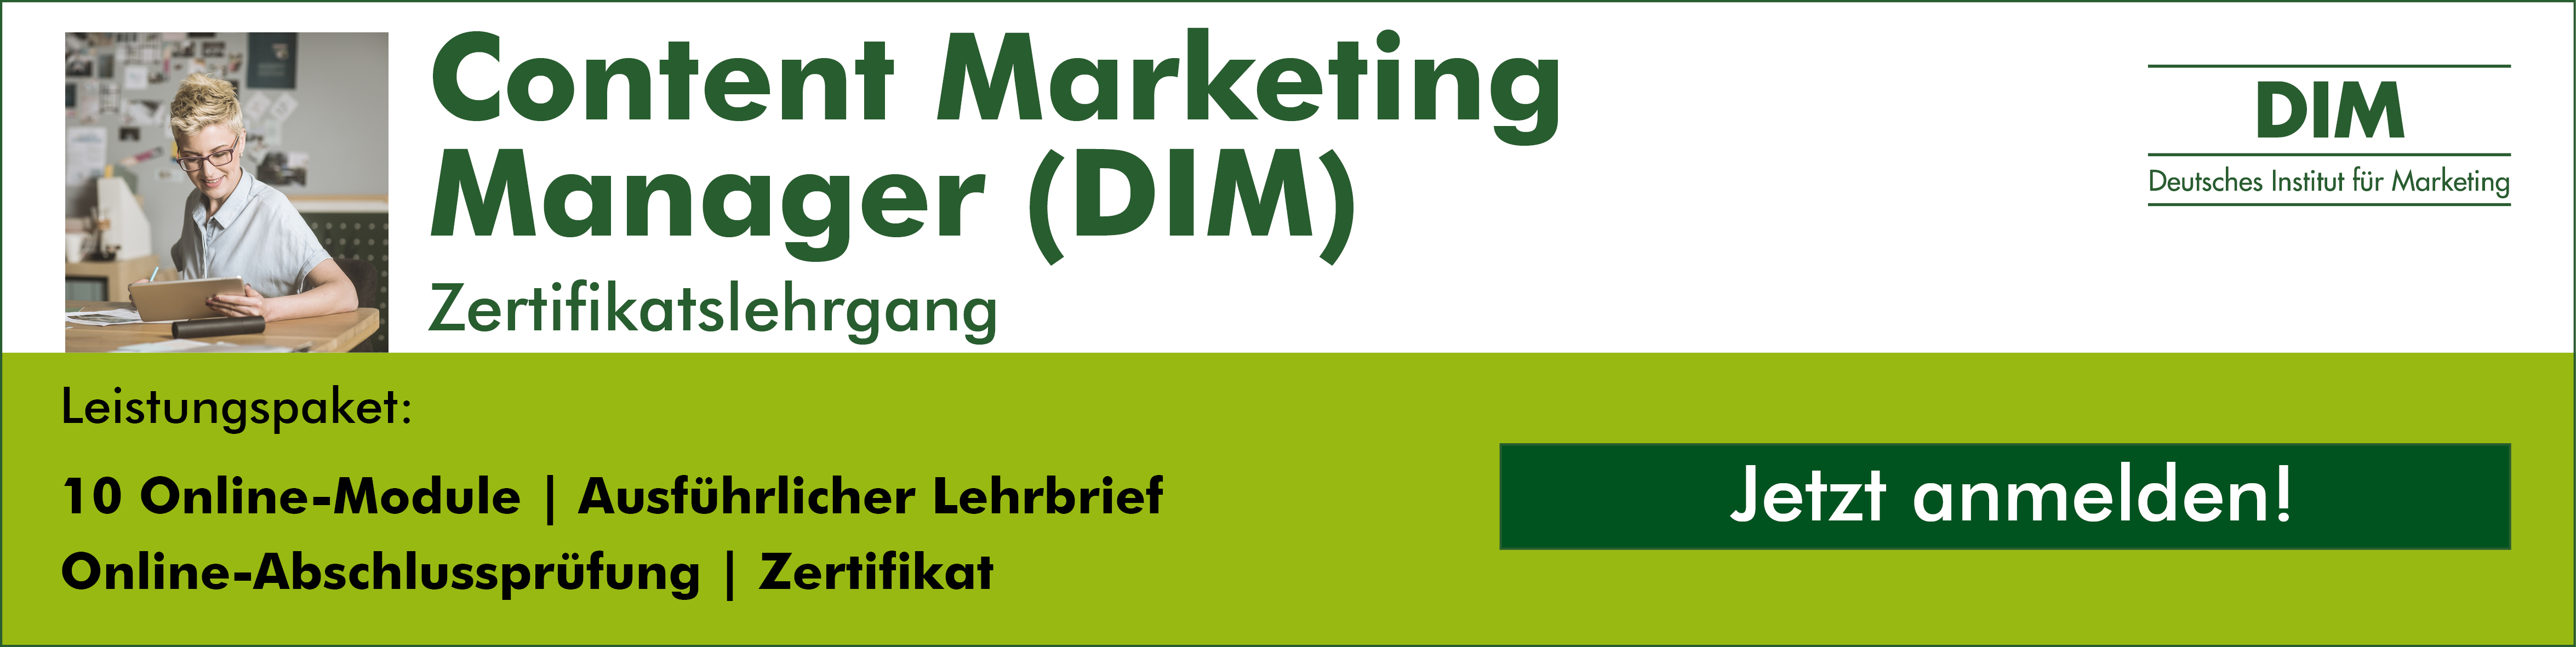 Zertifikatslehrgang Content Marketing Manager (DIM)